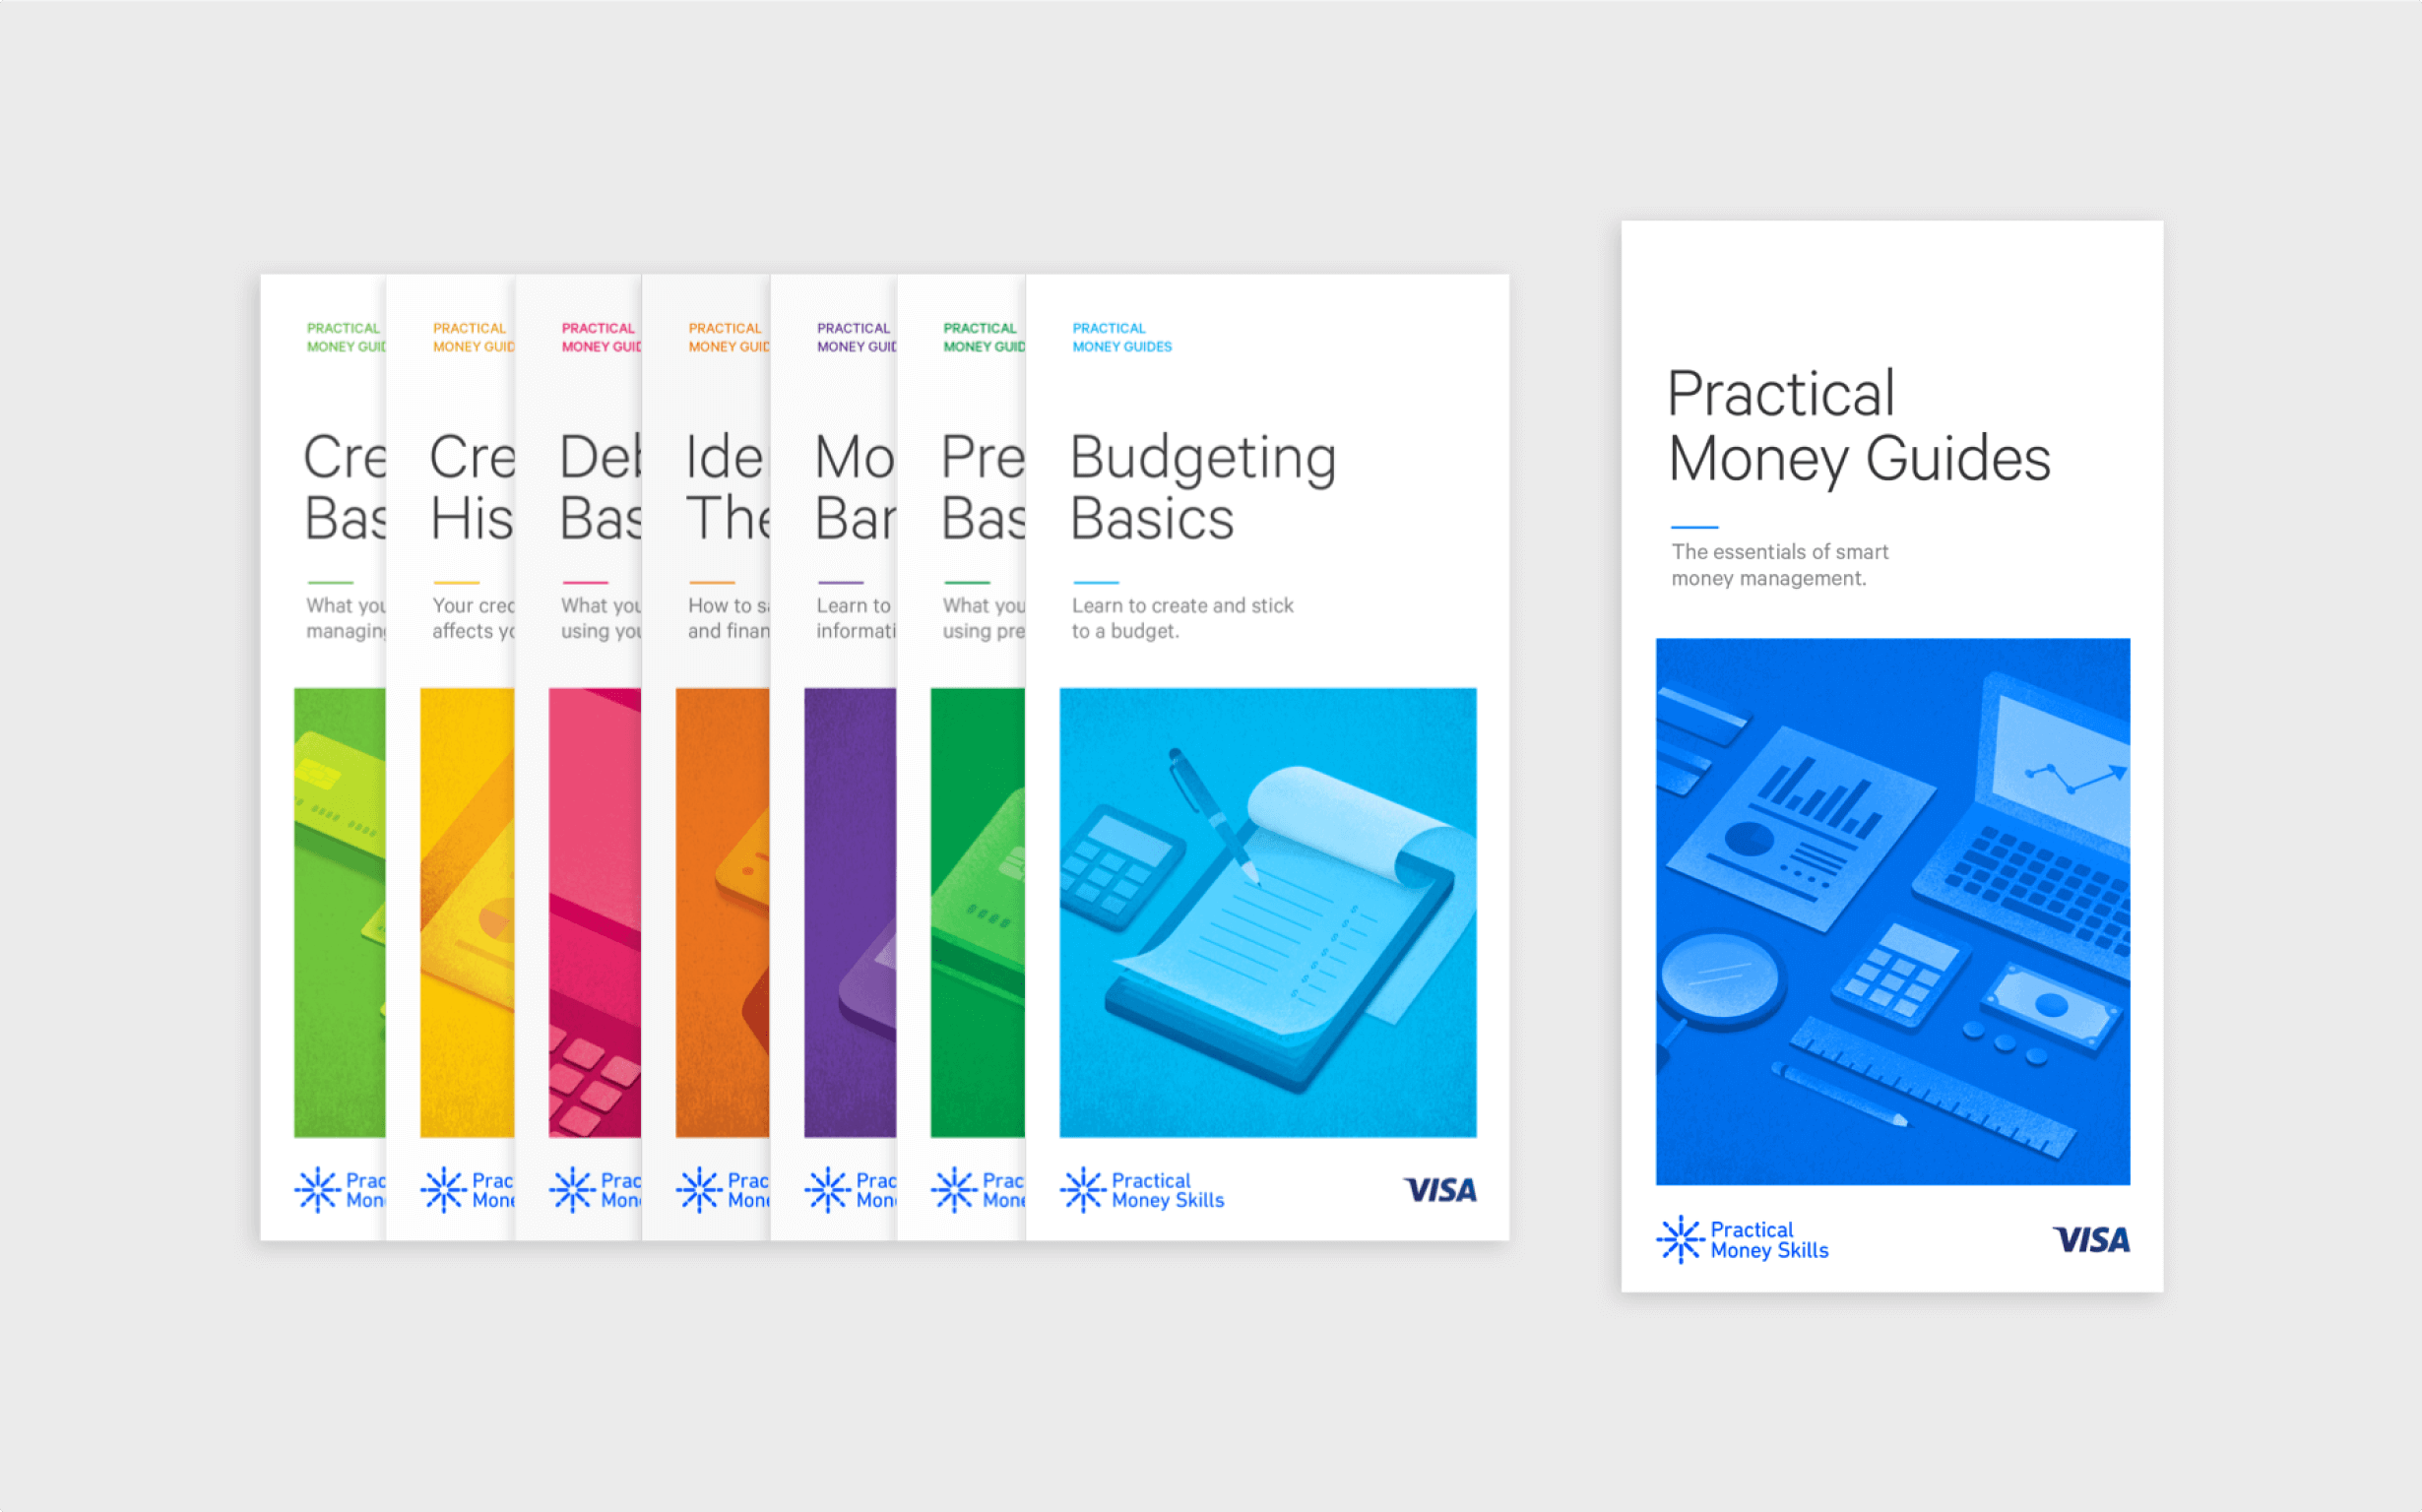 A set of guides outline financial literacy topics, with short headlines and colorful illustrations.